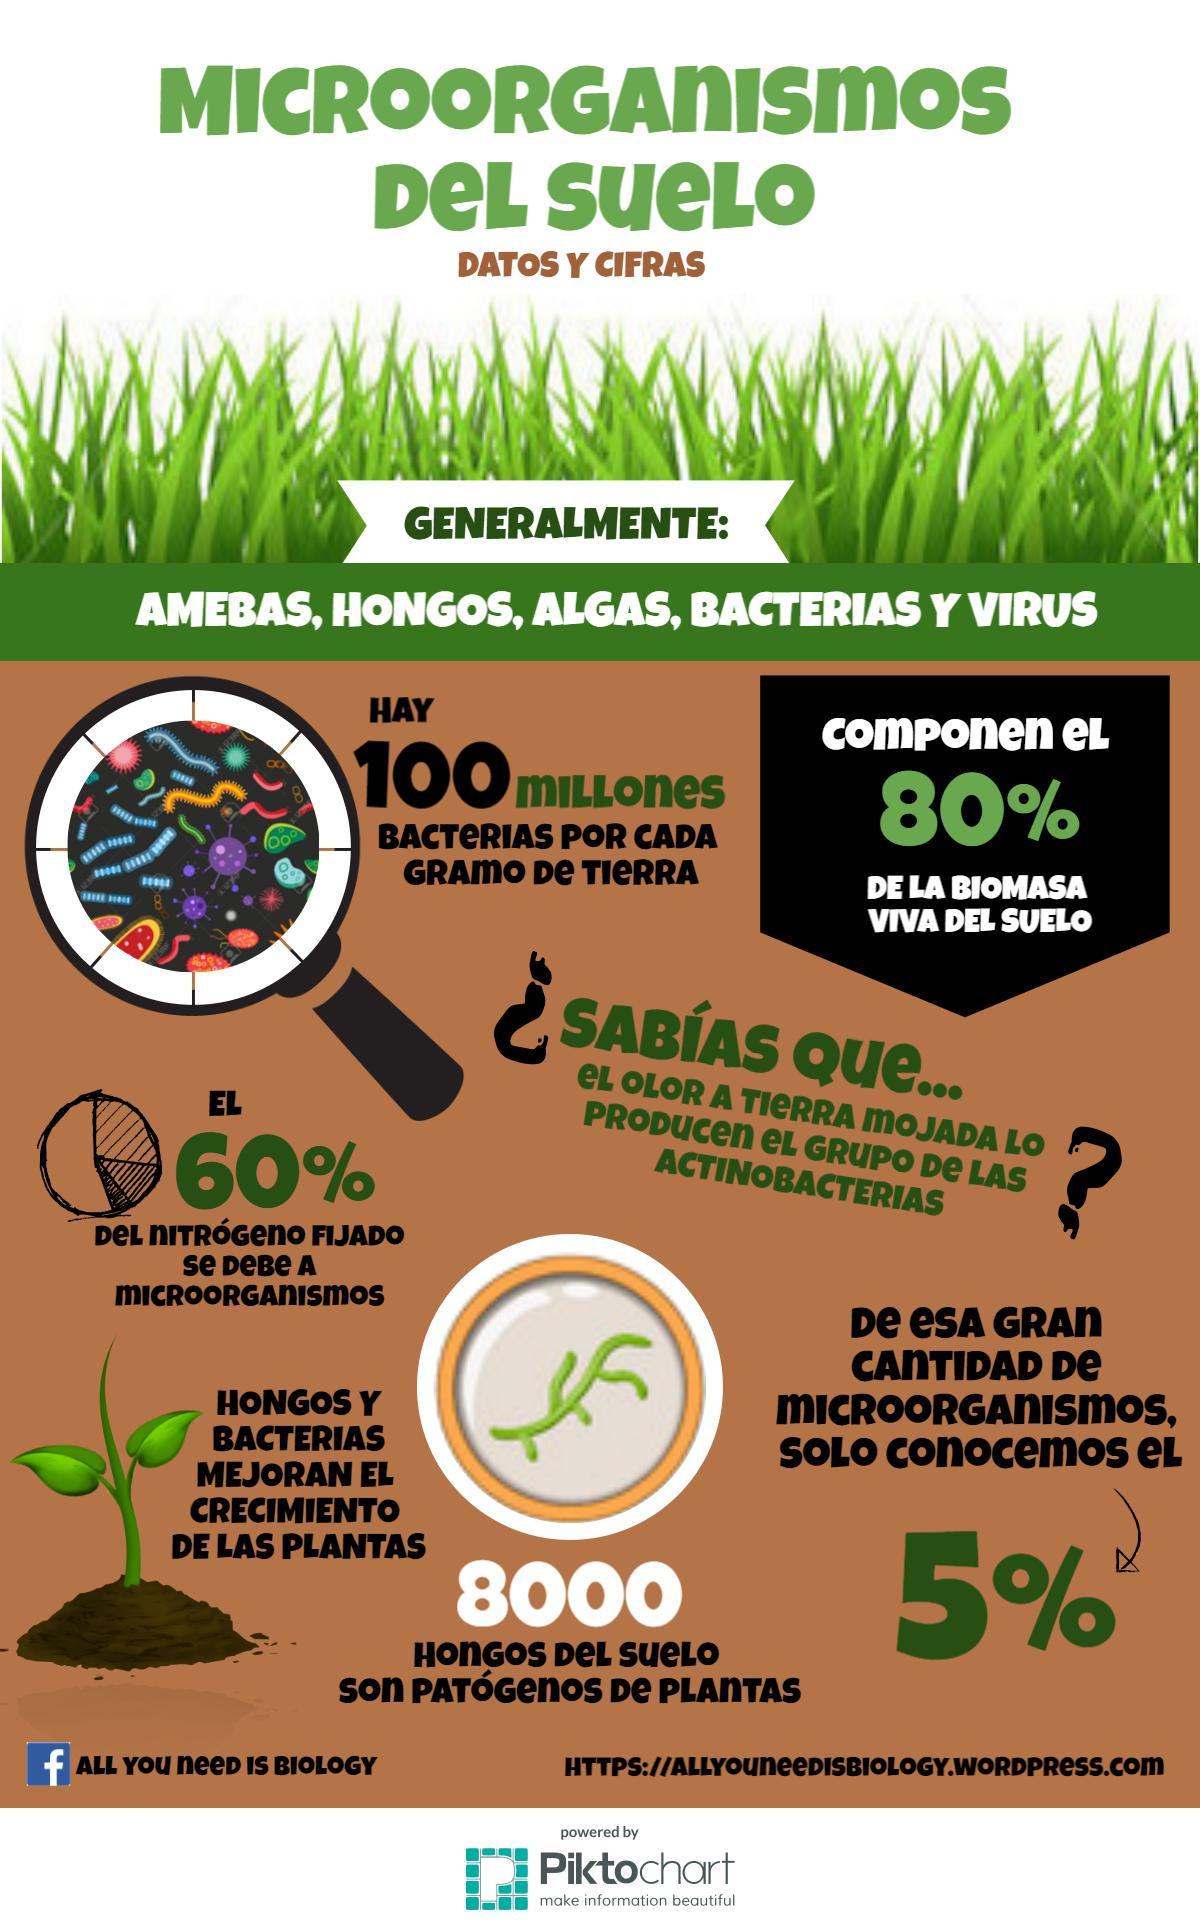 Microbiologia Del Suelo Infografía Microorganismos Del Suelo All You Need Is